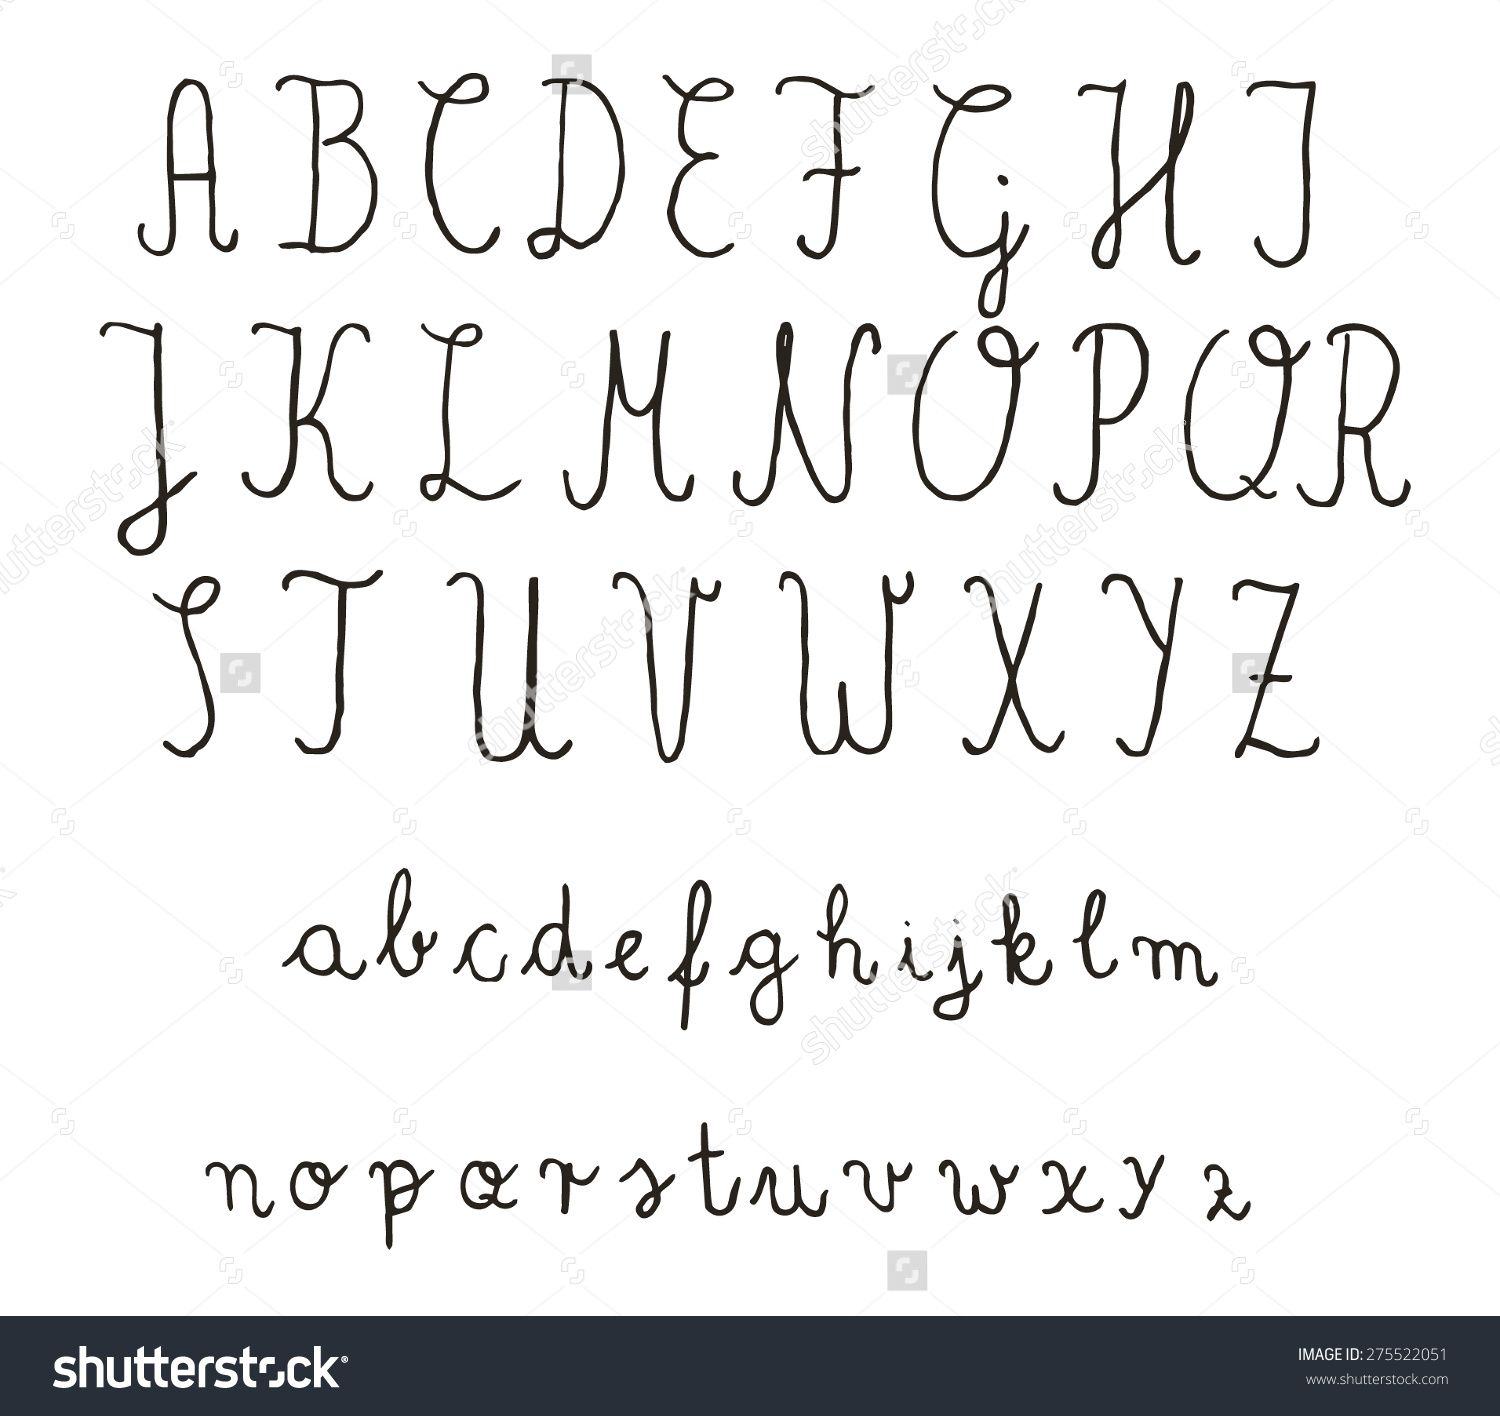 17 Best images about calligraphy on Pinterest | Calligraphy paper ...